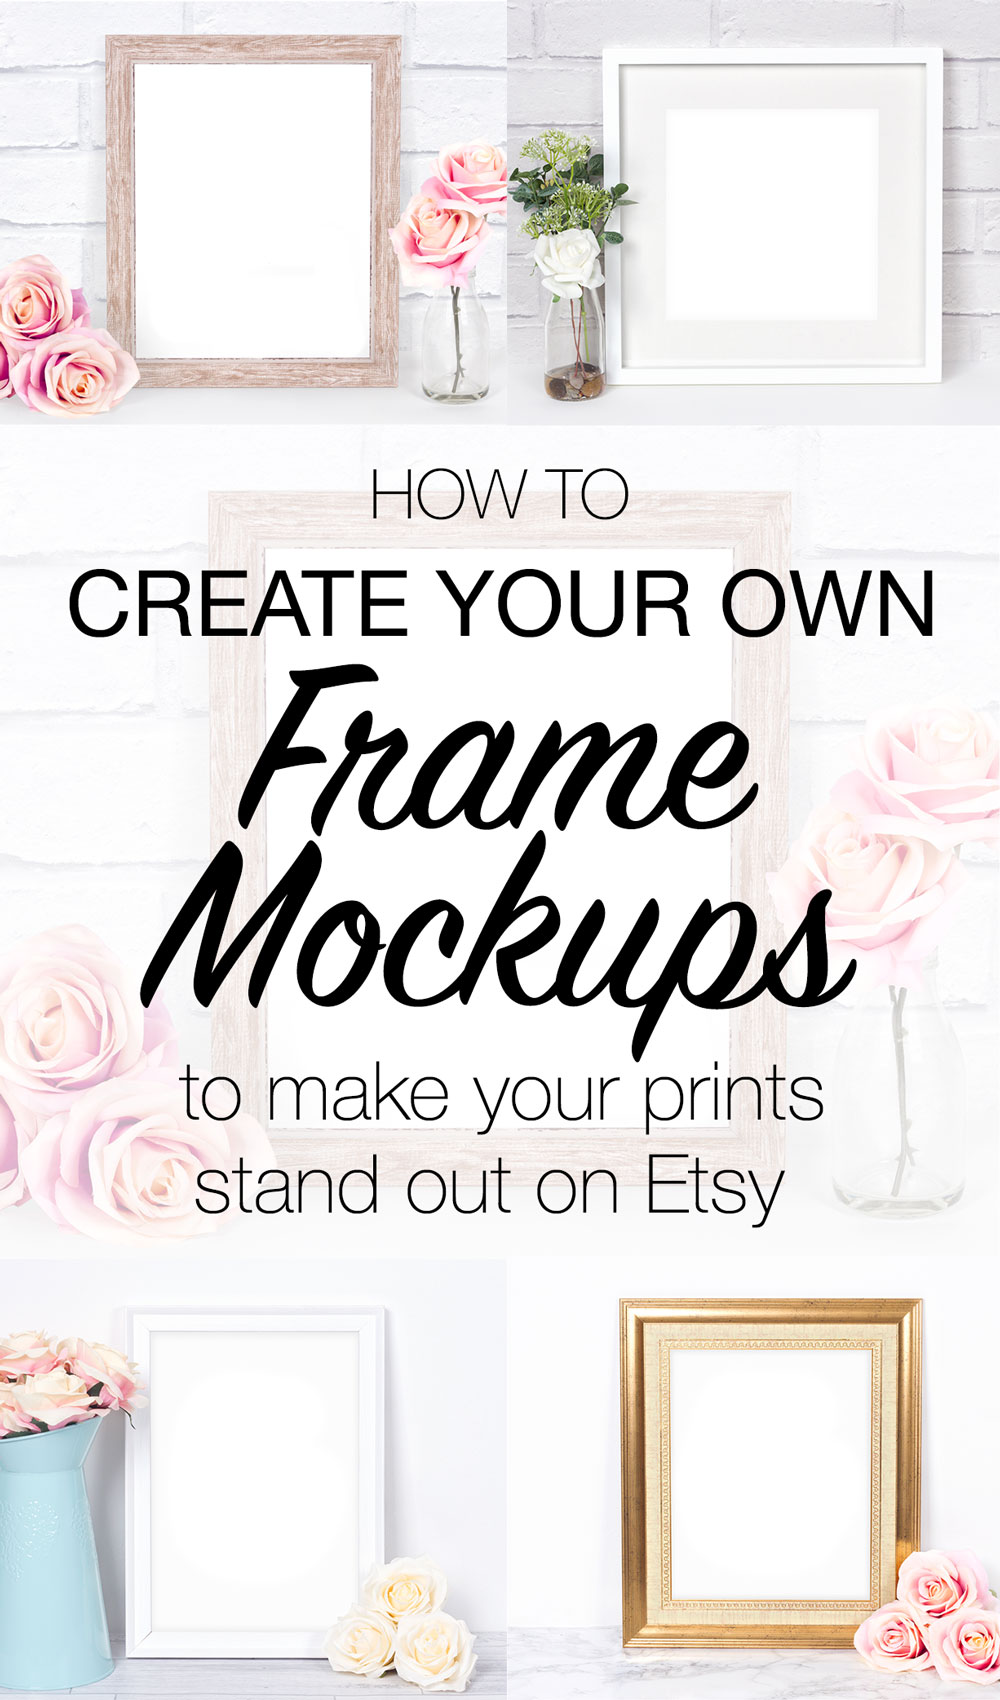 How To Create Your Own Frame Mockups - Pixomize